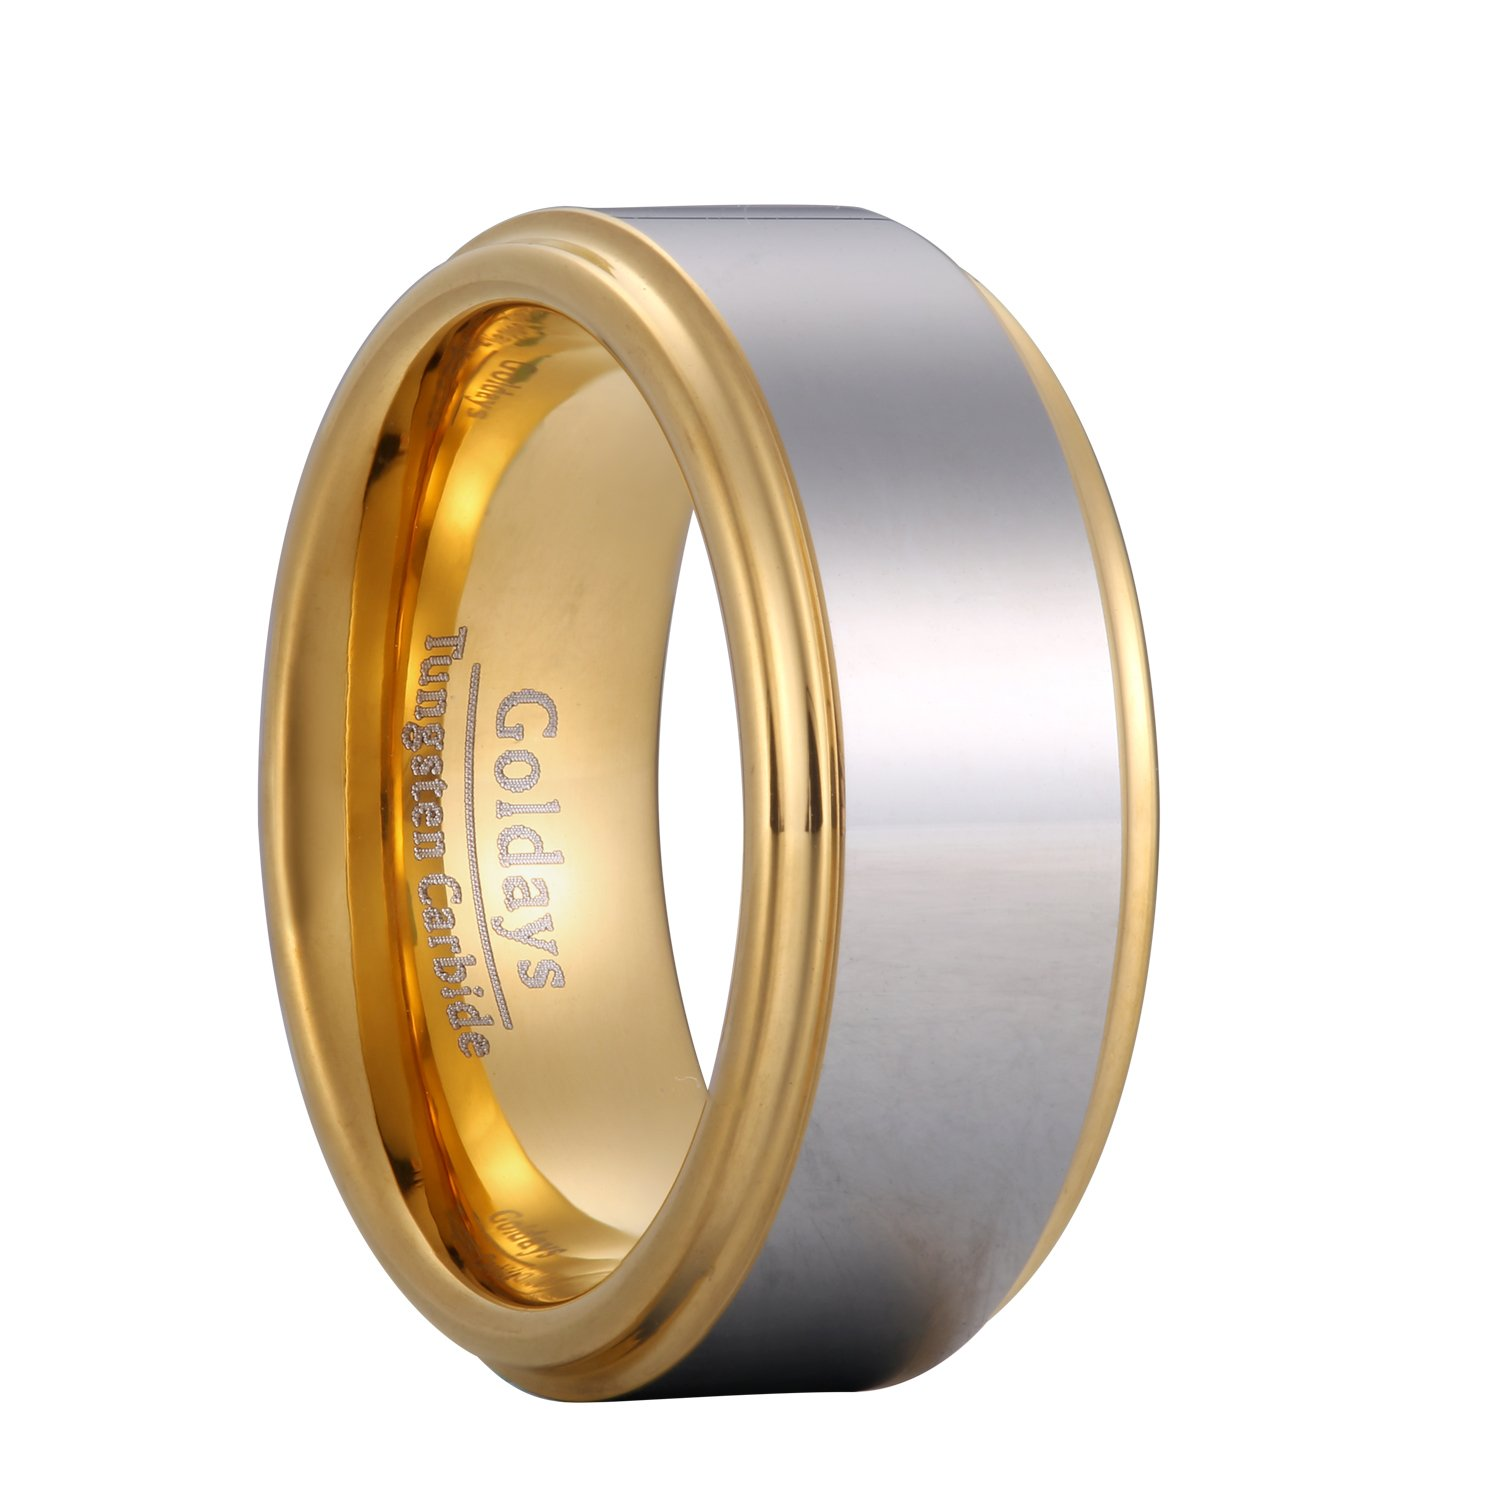 GOLDAYS Unisex 8mm 18k Gold Plated Tungsten Carbide Ring Two Tone Wedding Band Ring Size6-13